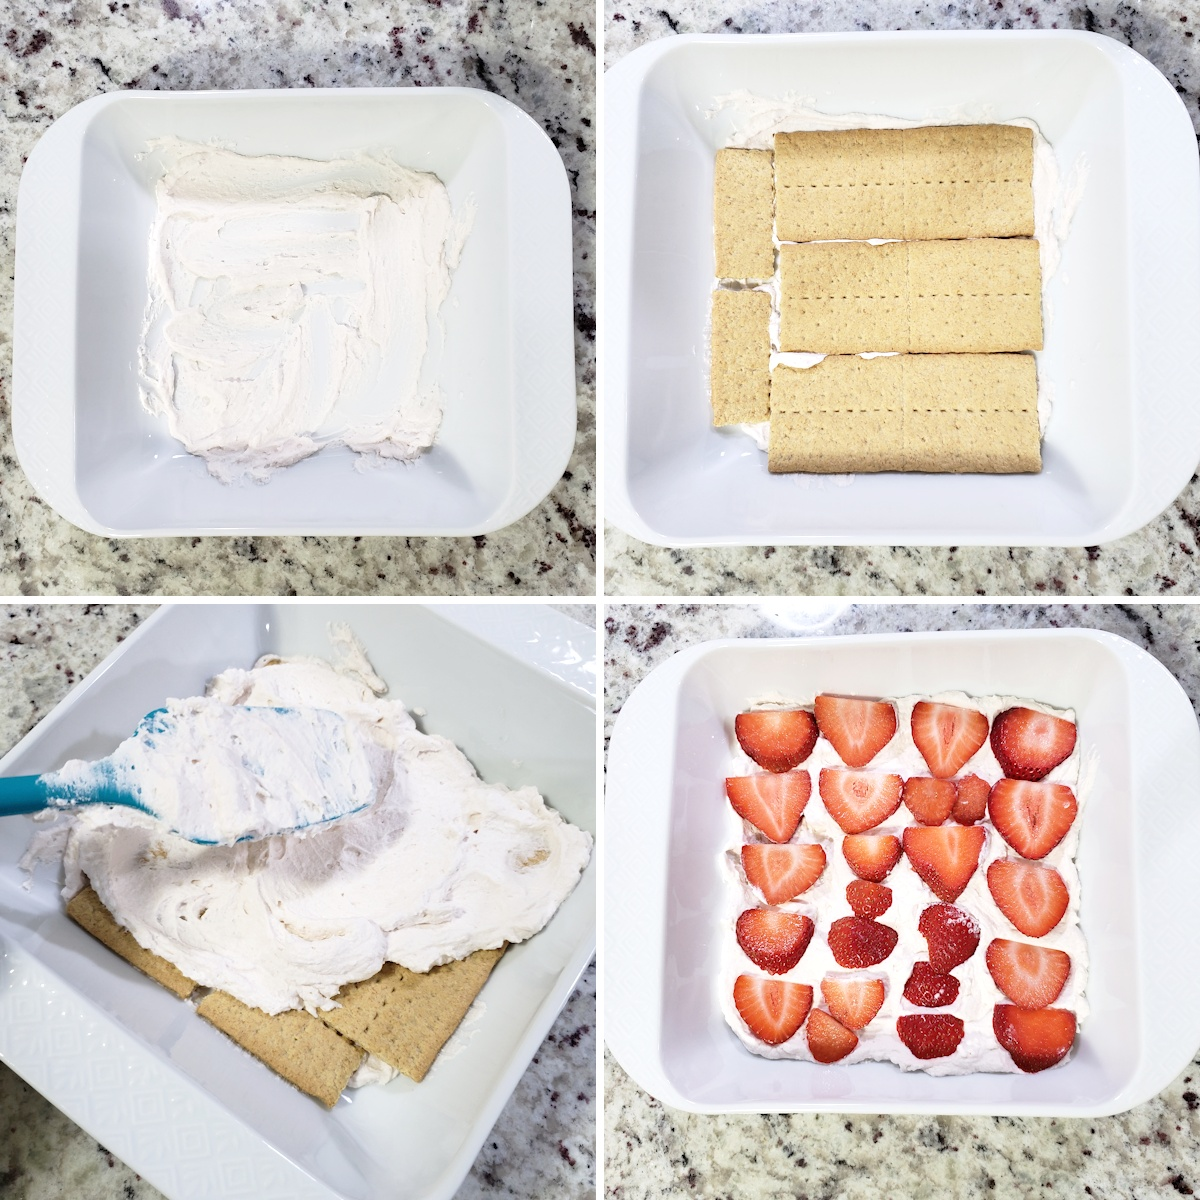 Adding the first layers of an icebox cake.